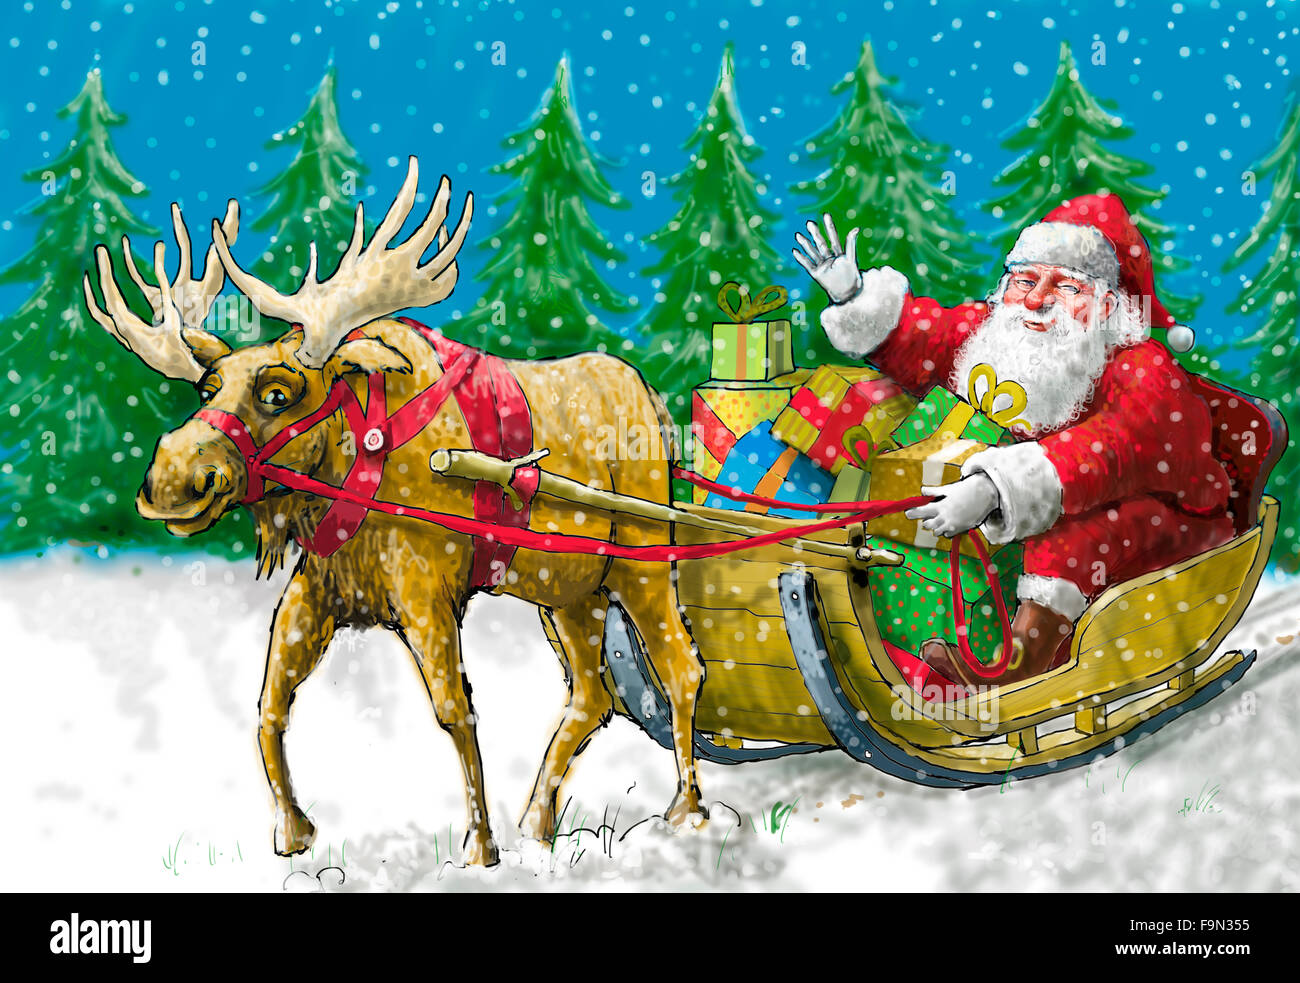 Santa pulled by a reindeer - Stock Image